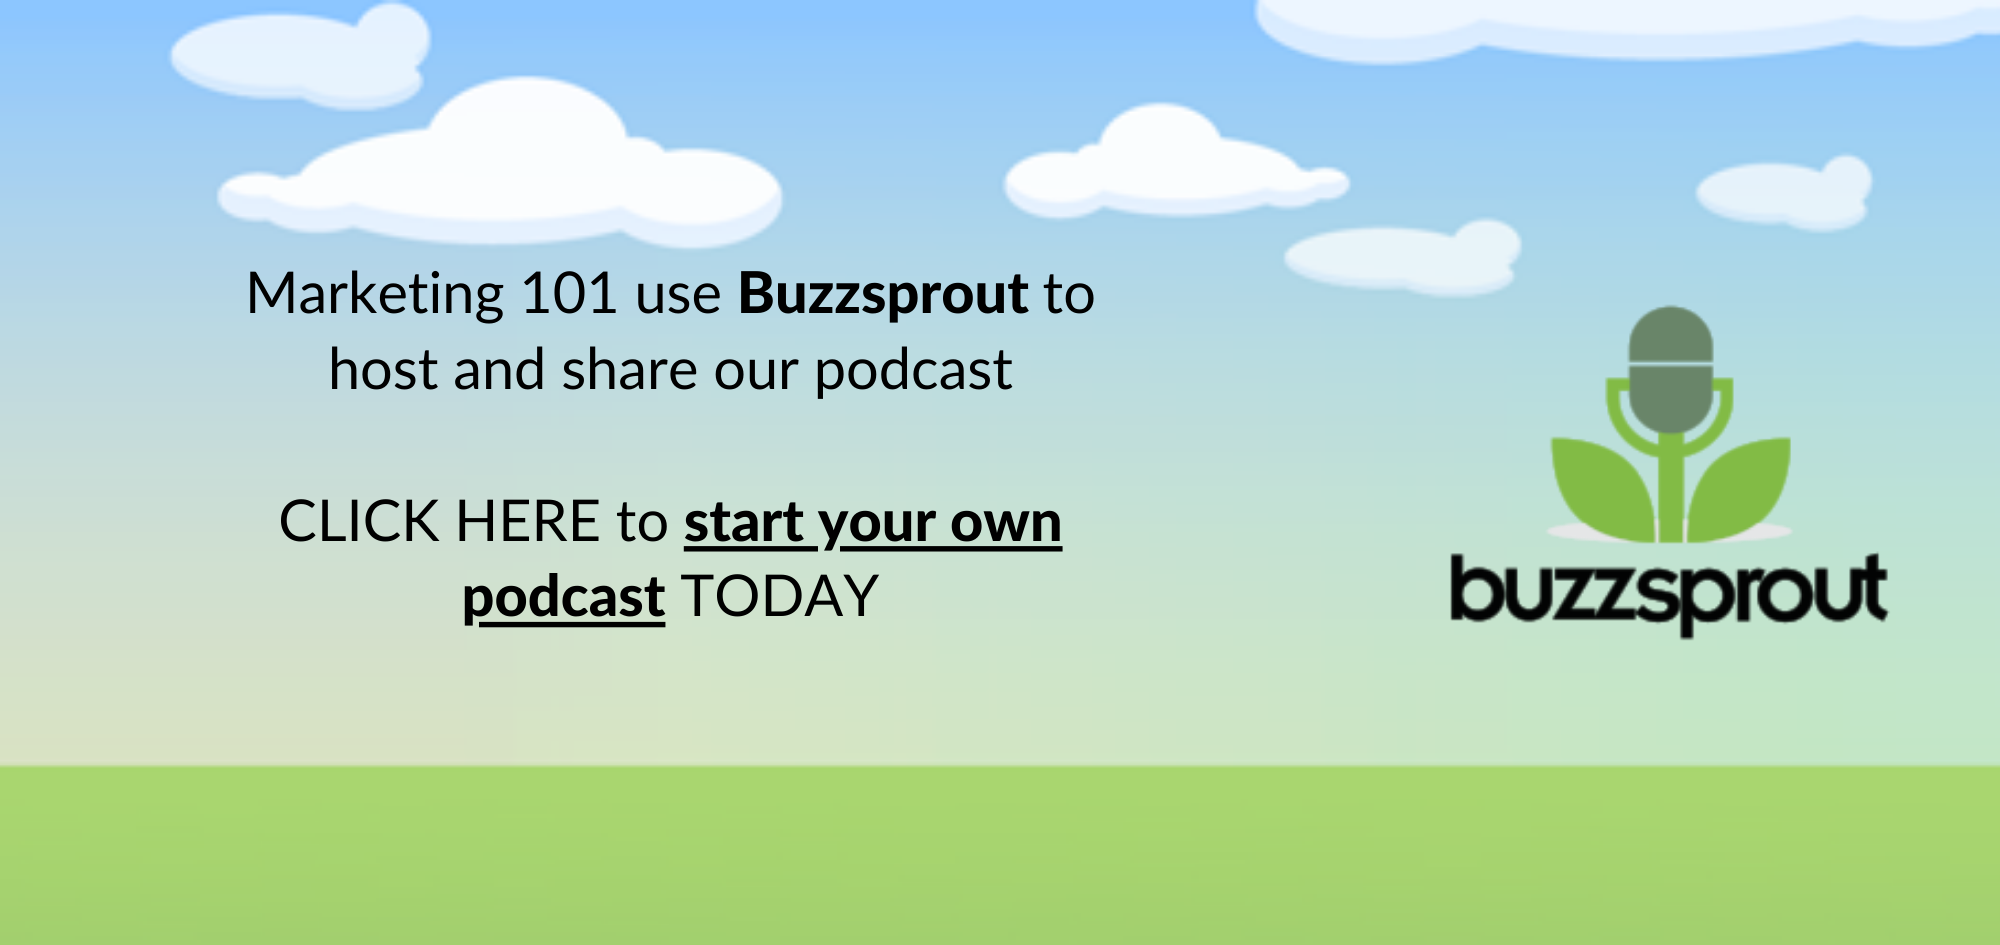 Marketing 101 podcast - buzzsprout banner - marketing consultant